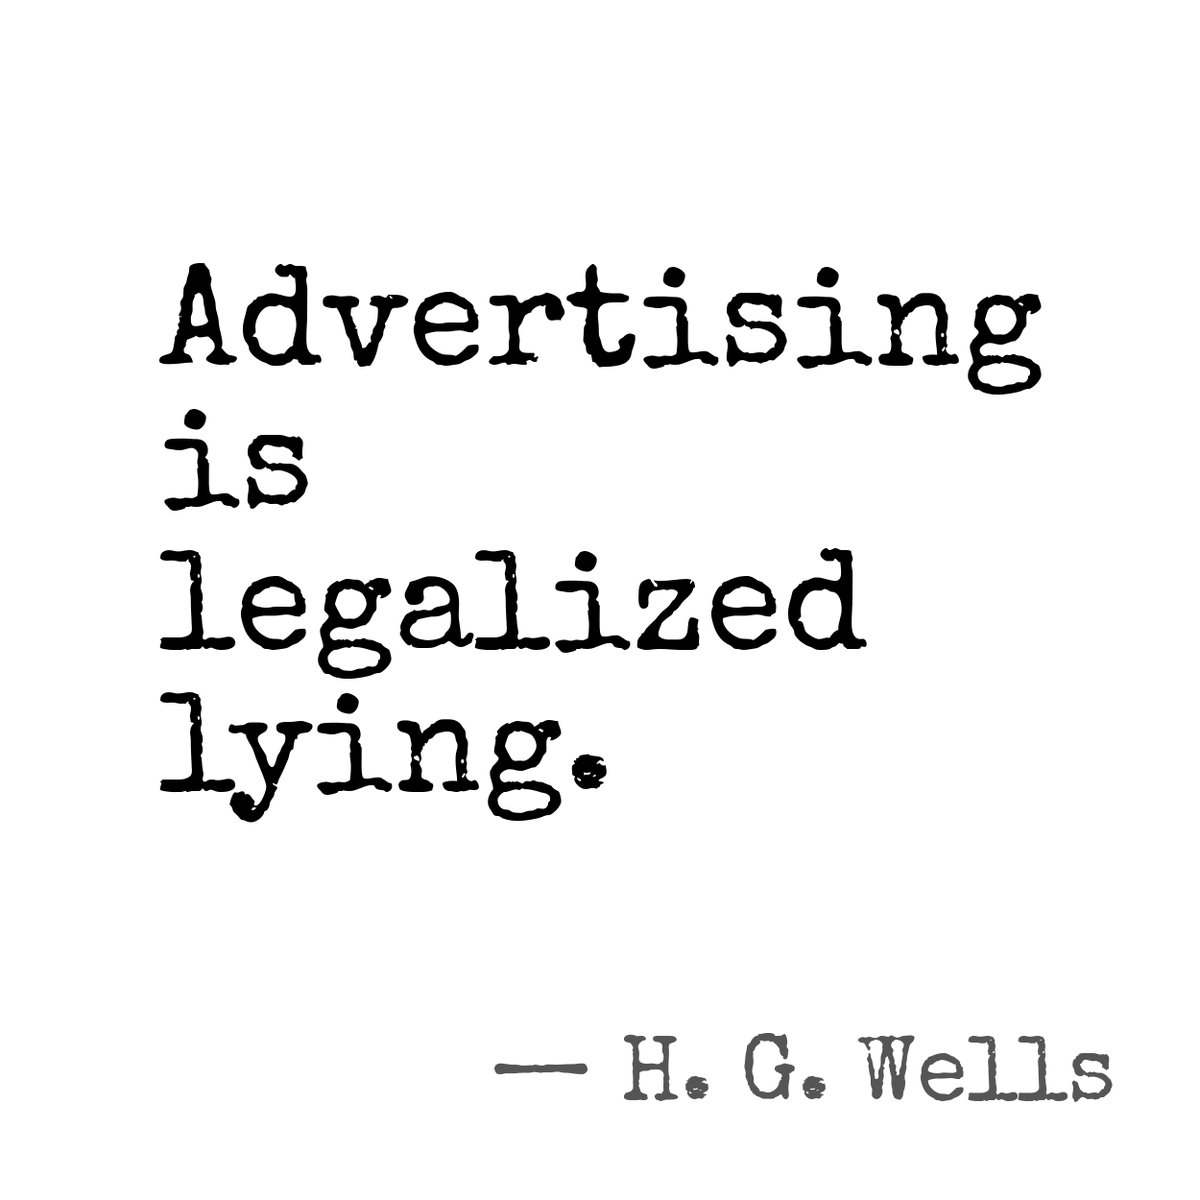 Advertising is legalized lying. - H. G. Wells